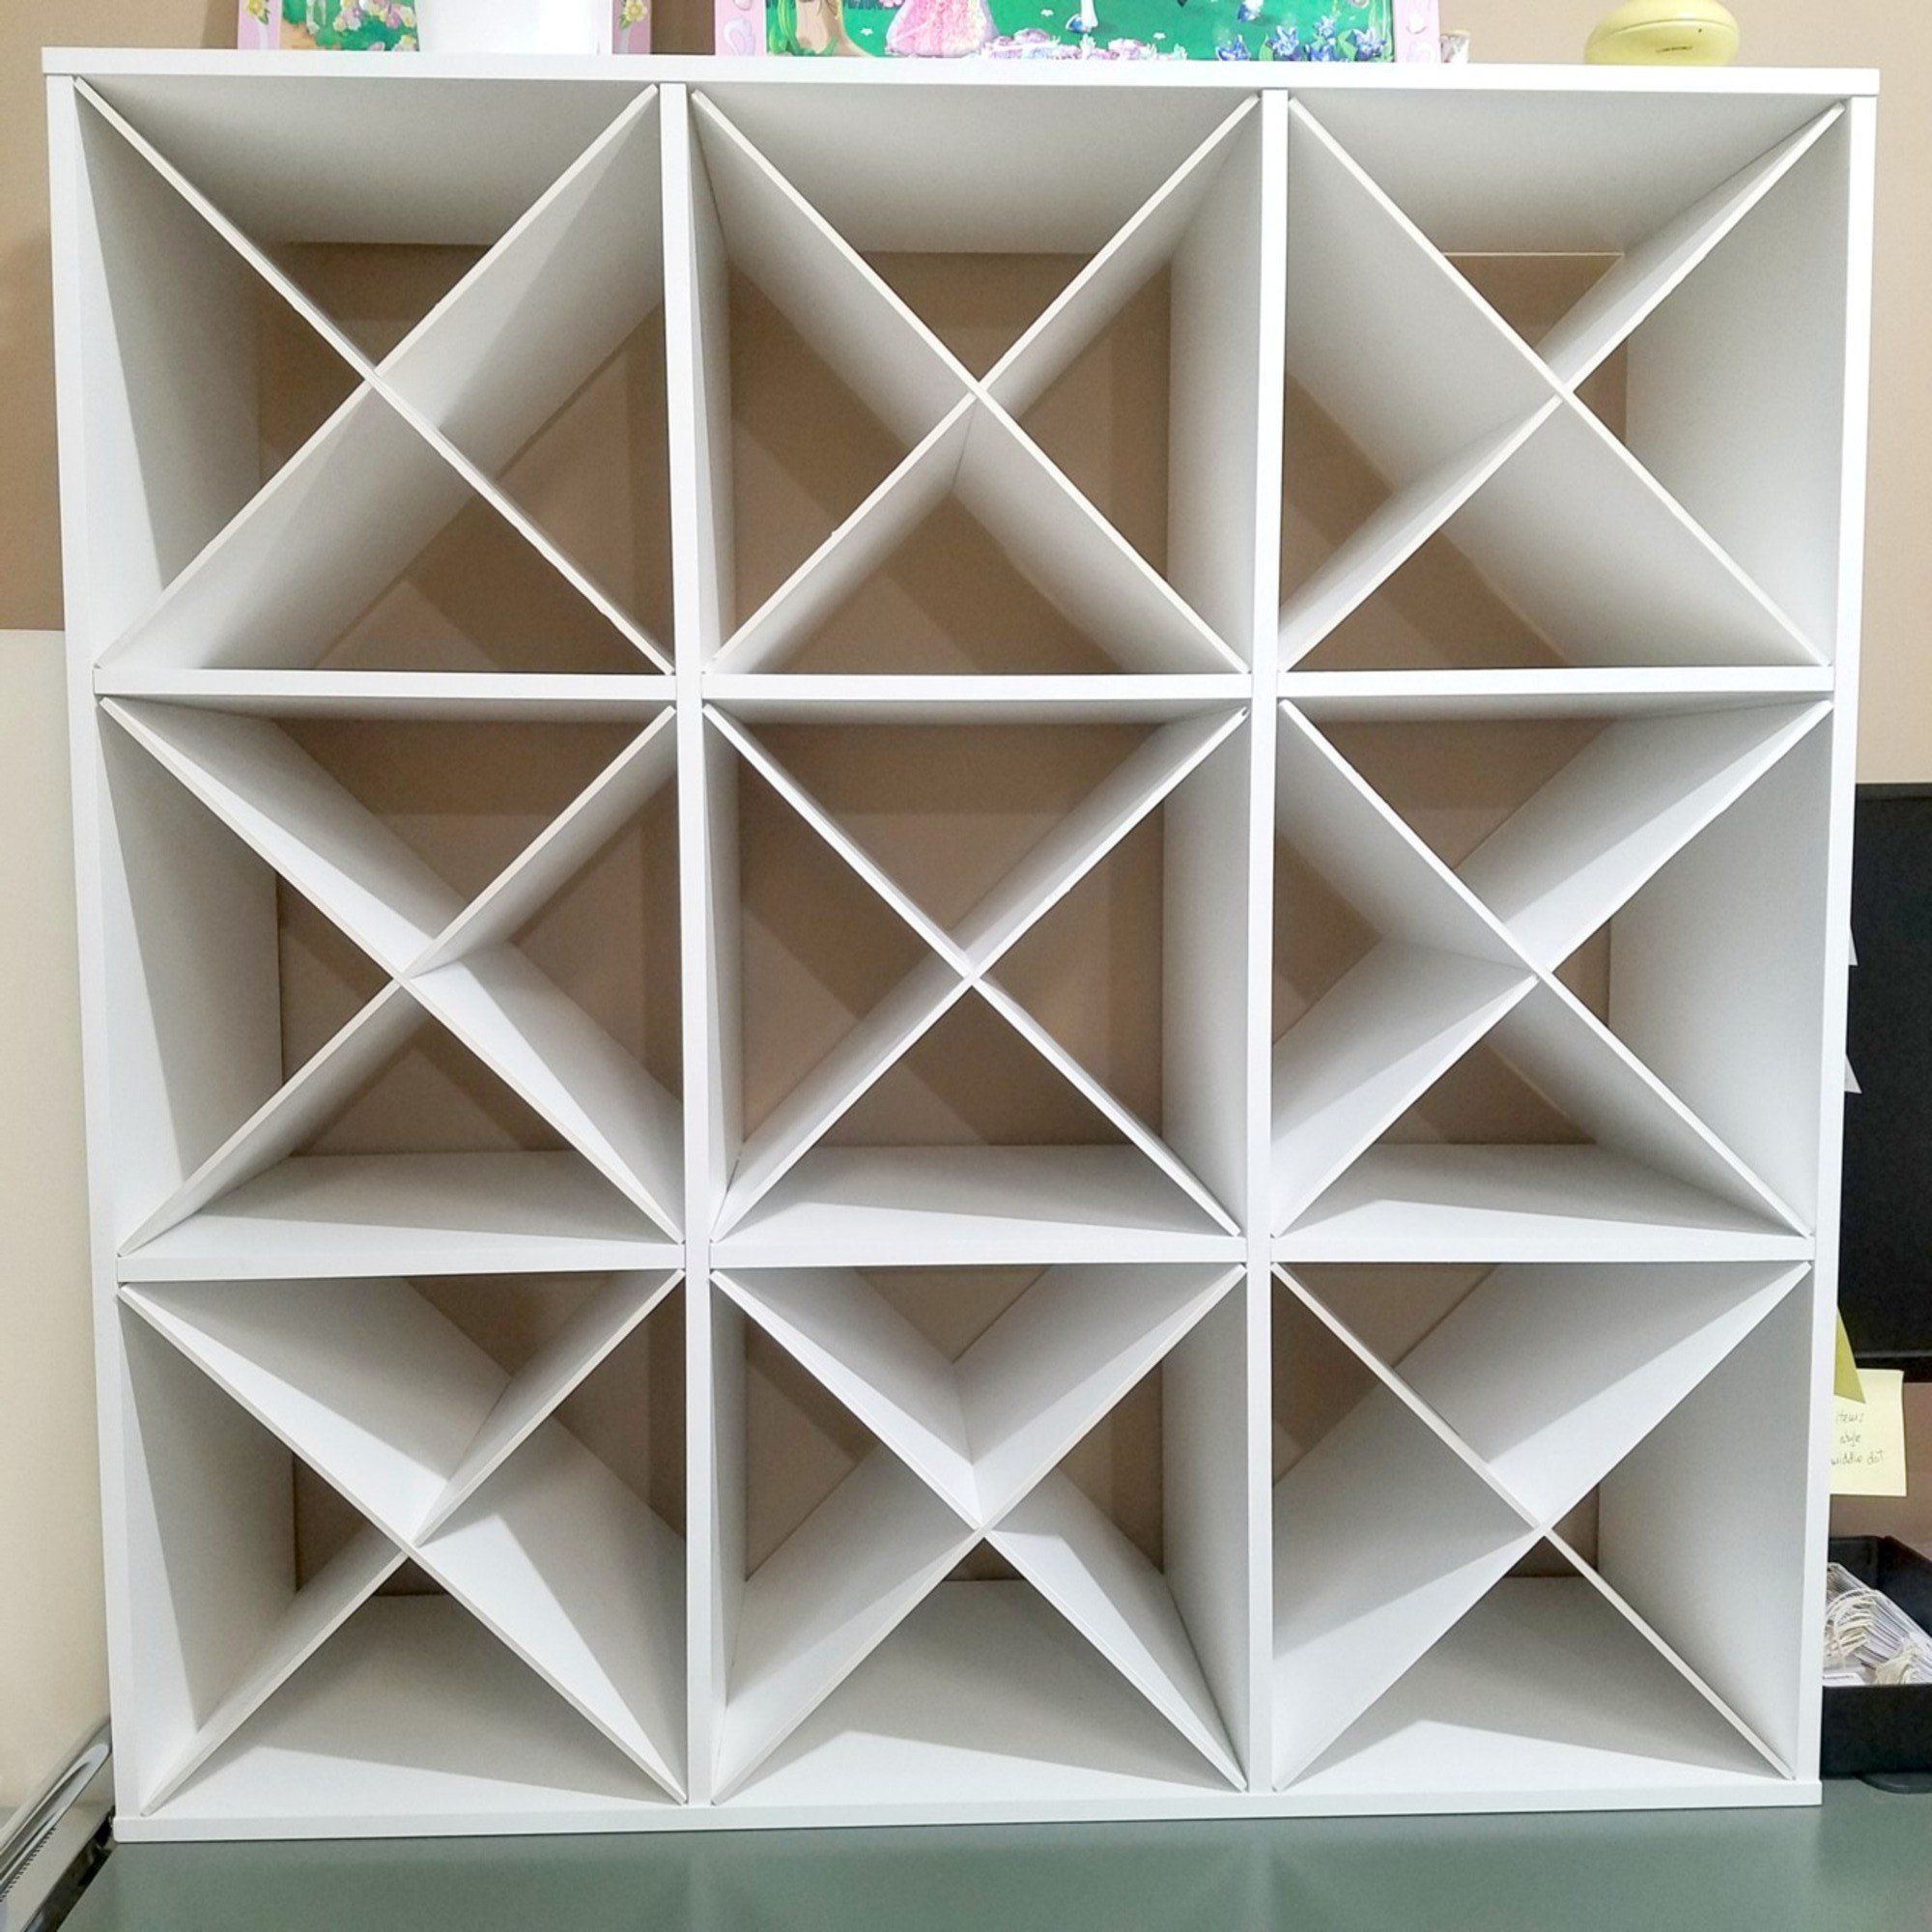 X Divider Cube Insert For Cube Storage Shelves Cube Storage Shelves Craft Room Organization Cube Storage